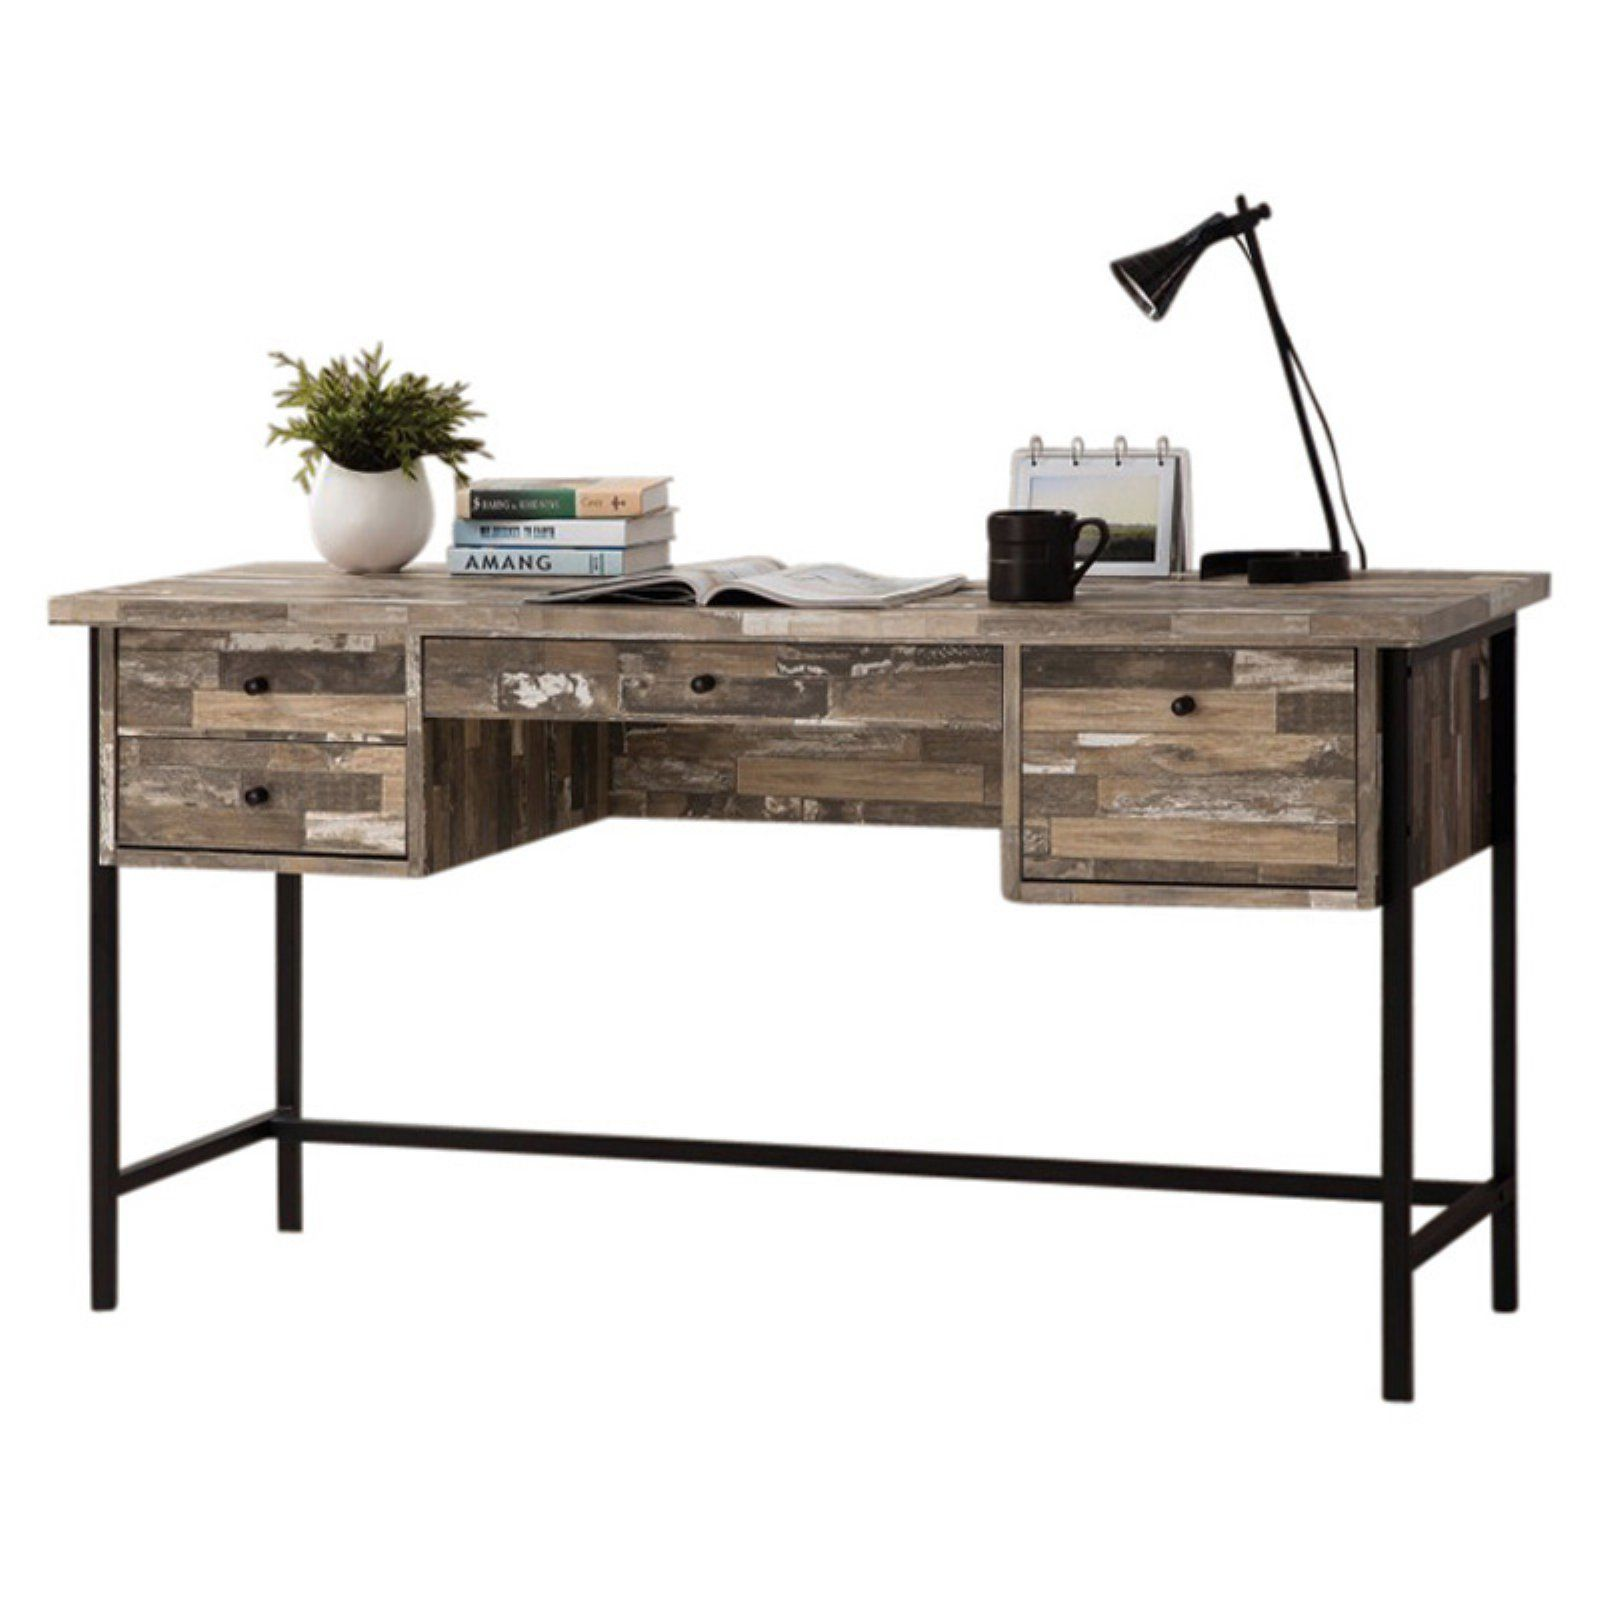 Benzara Rustic Wood Writing Desk With Drawers Writing Desk With Drawers Wood Writing Desk Writing Desk